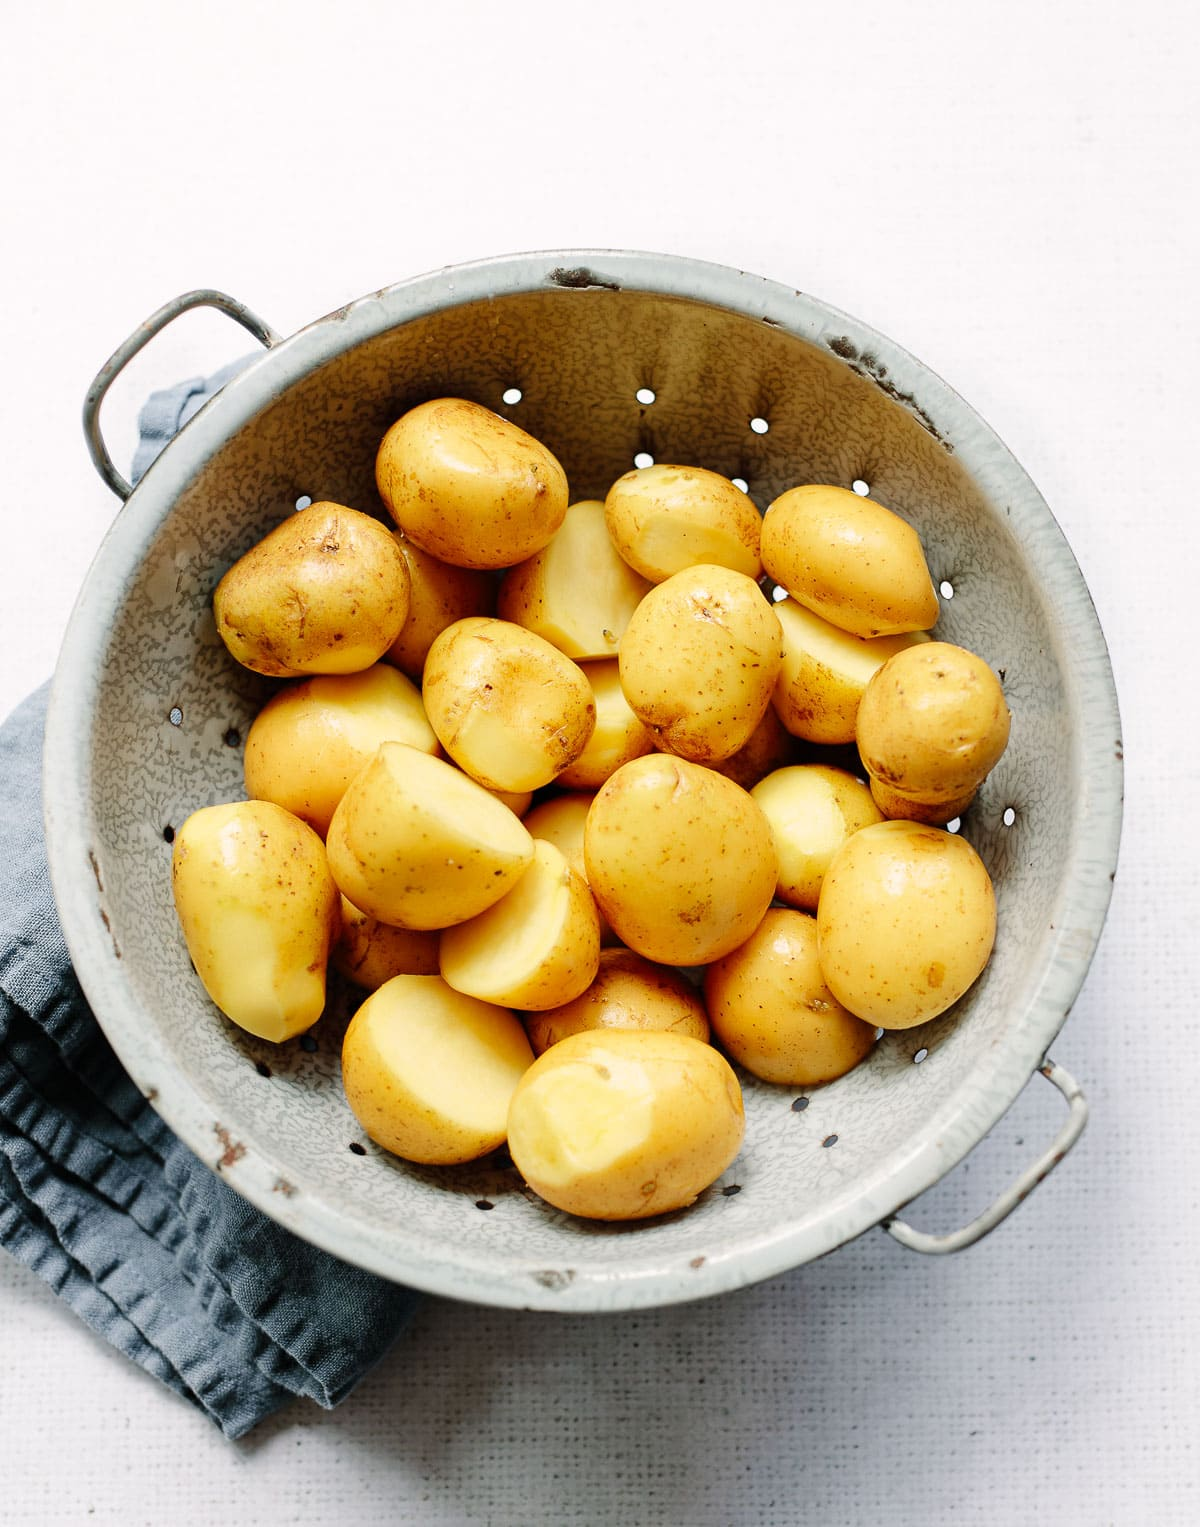 A gray metal colander with small yellow Yukon Gold potatoes ready for boiling.